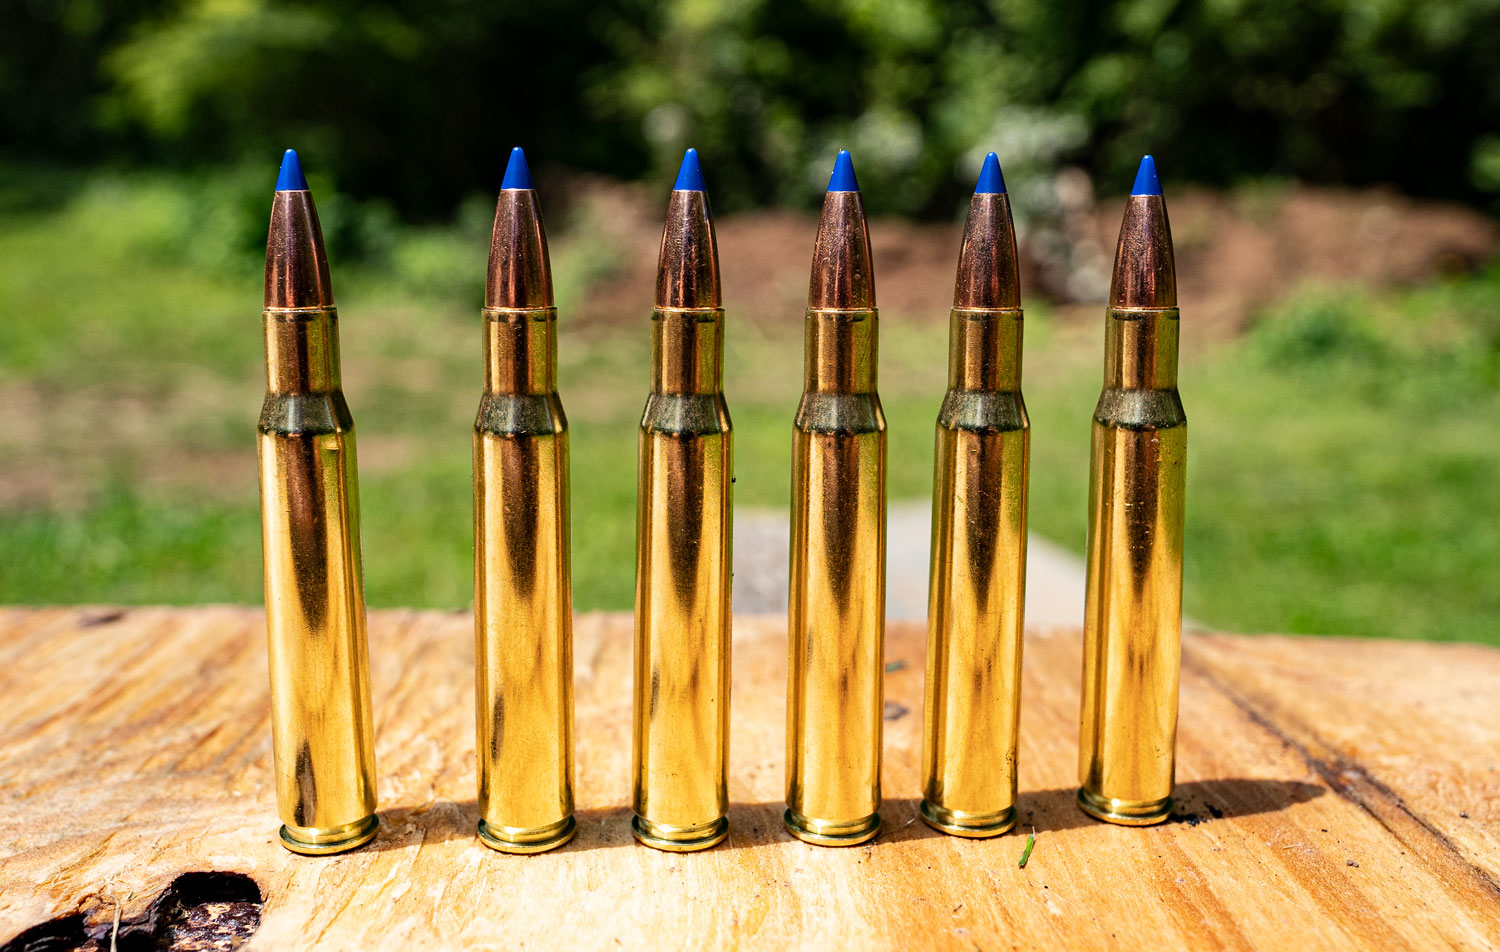 Barnes VOR-TX ammo cartridges lined up at a shooting range